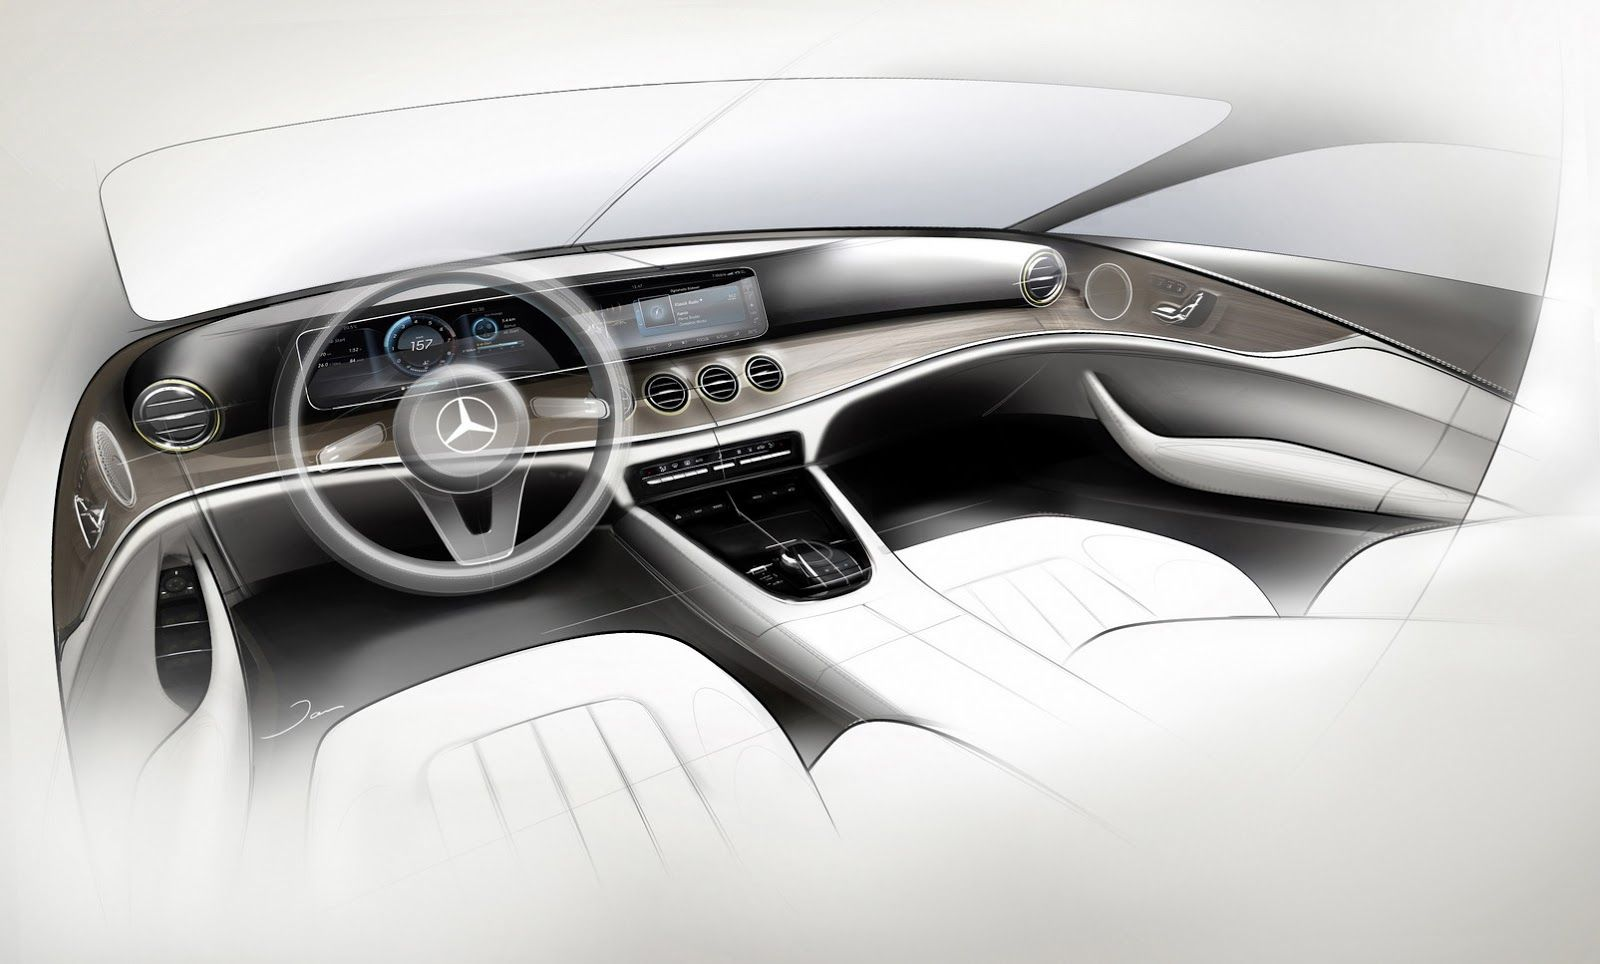 2017 Mercedes Benz E Class First Official Look At Interior 23